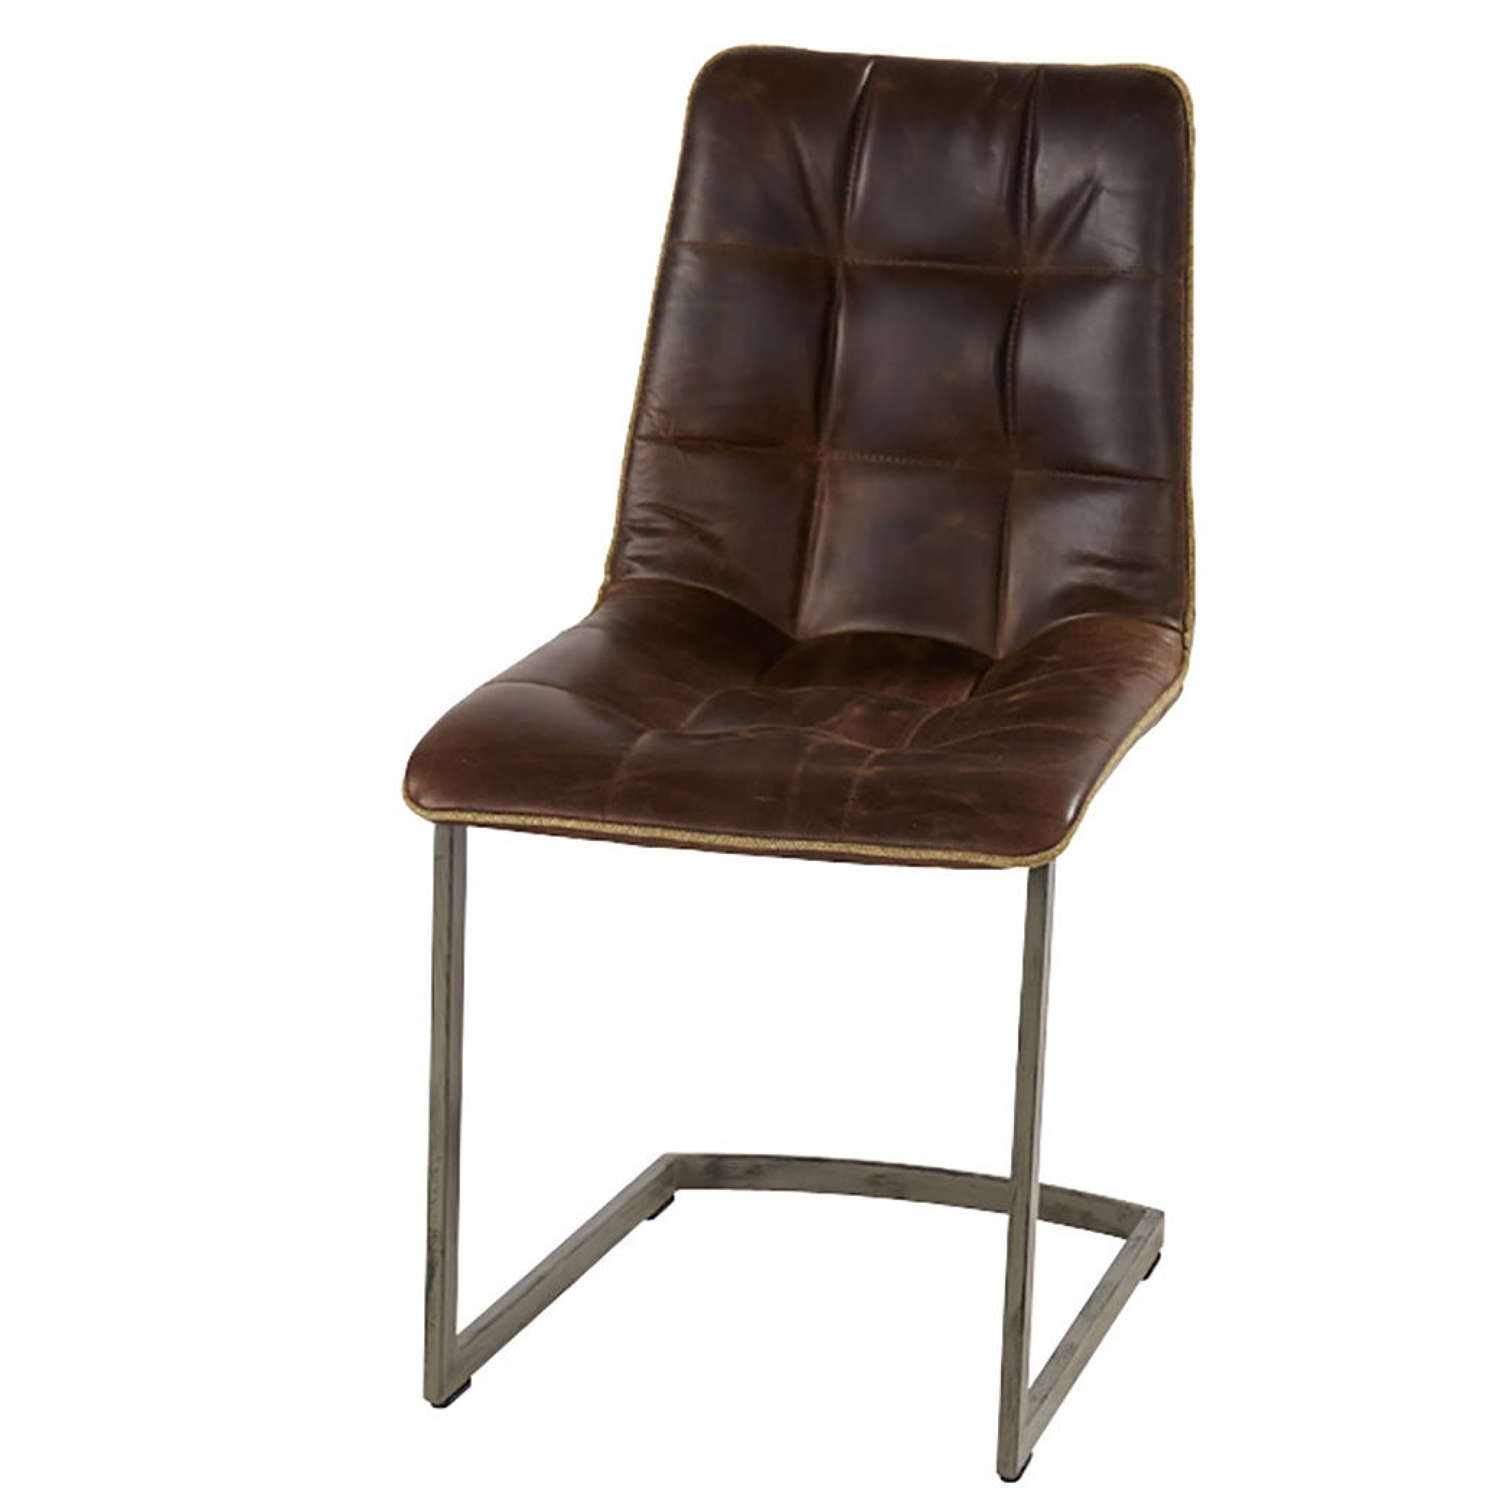 Dolomite metal frame chair